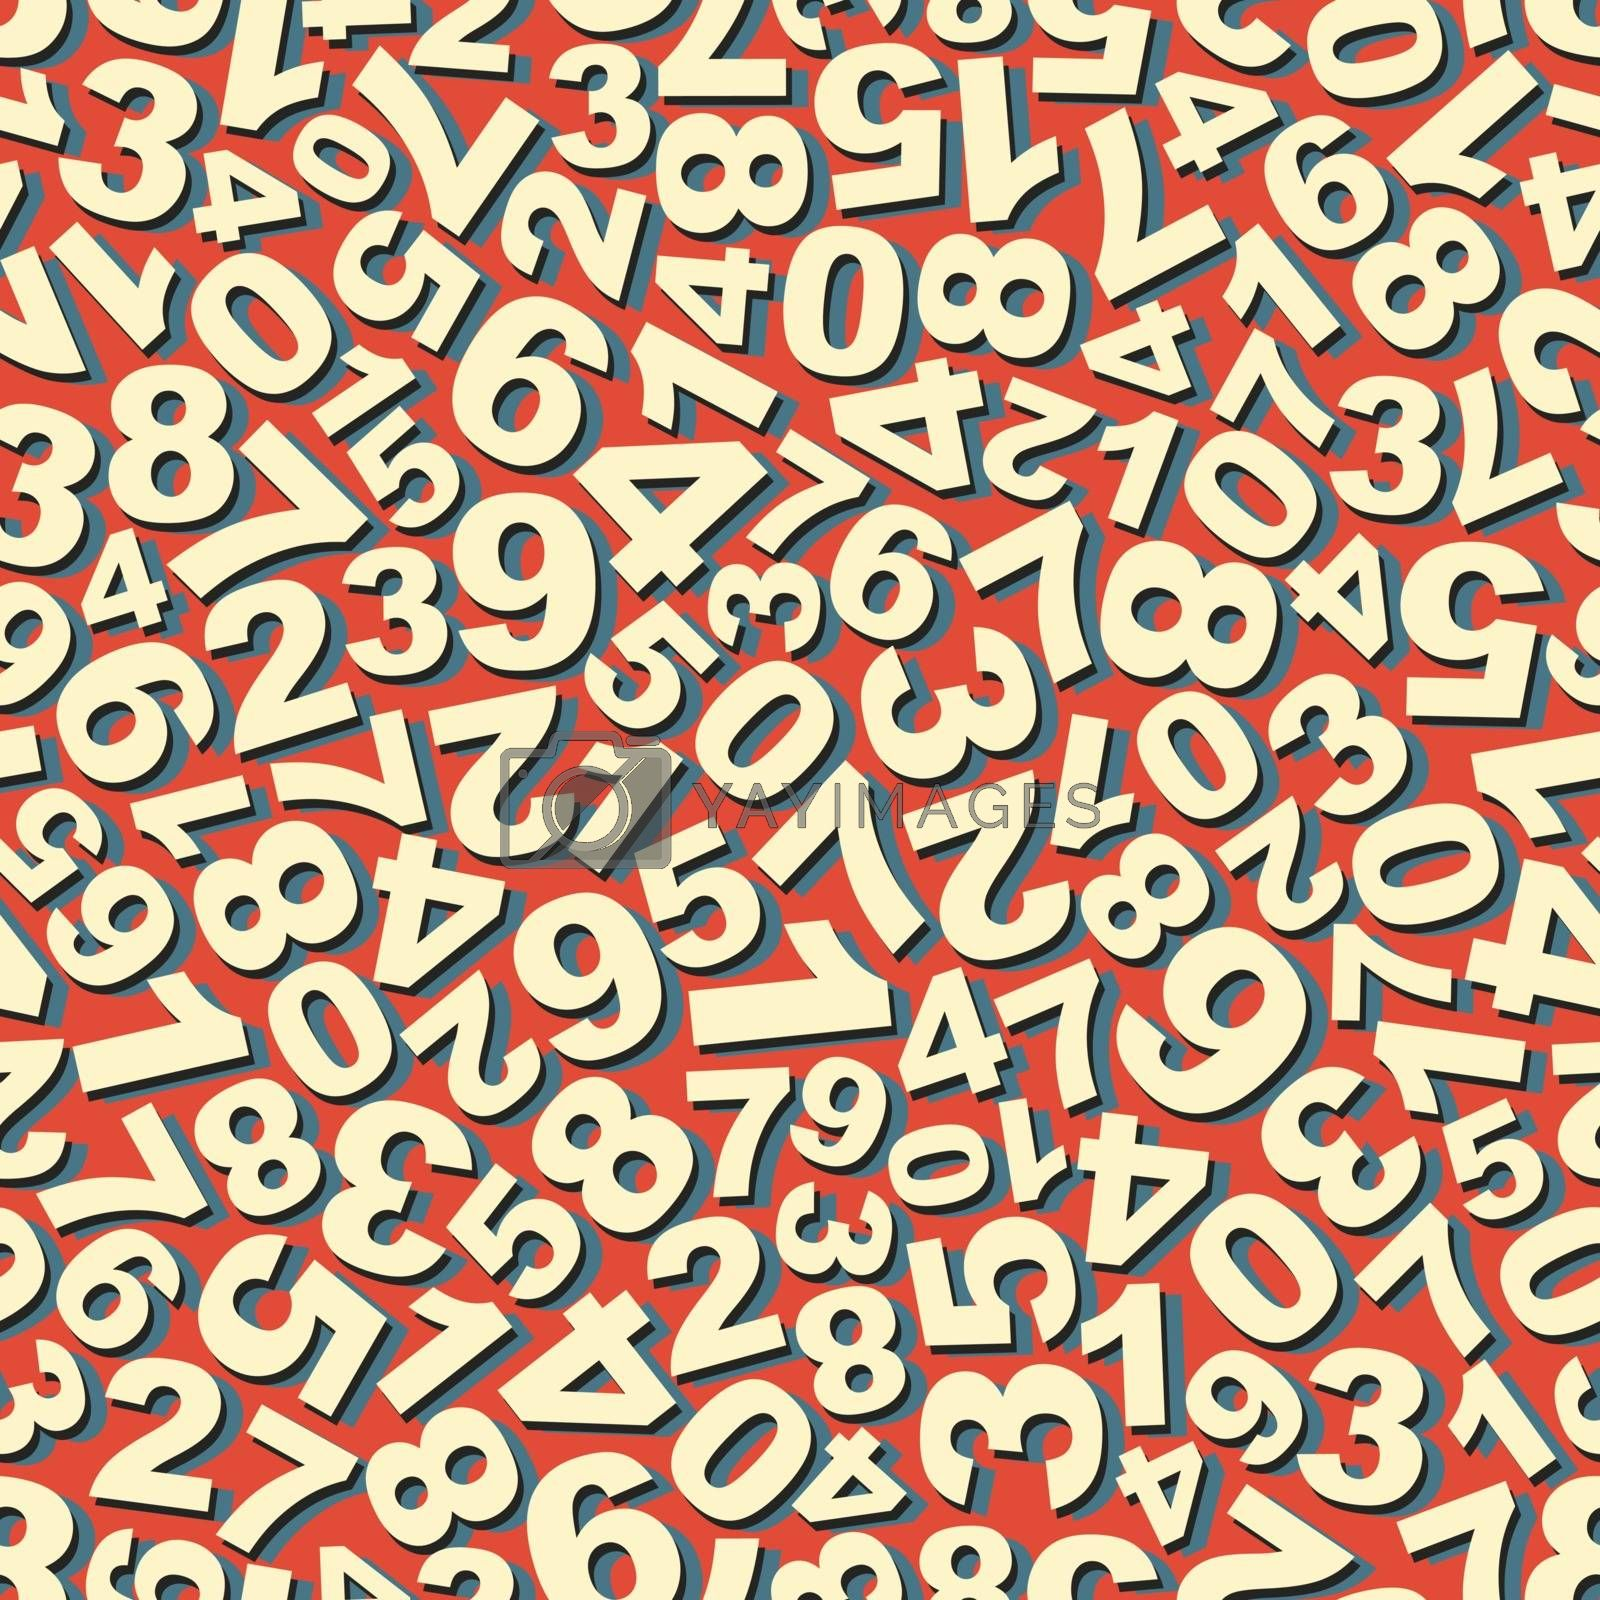 Numbers. Seamless Pattern. Vector Illustration. Can Be Used For Wallpaper, Web Page Background, Web Banners.